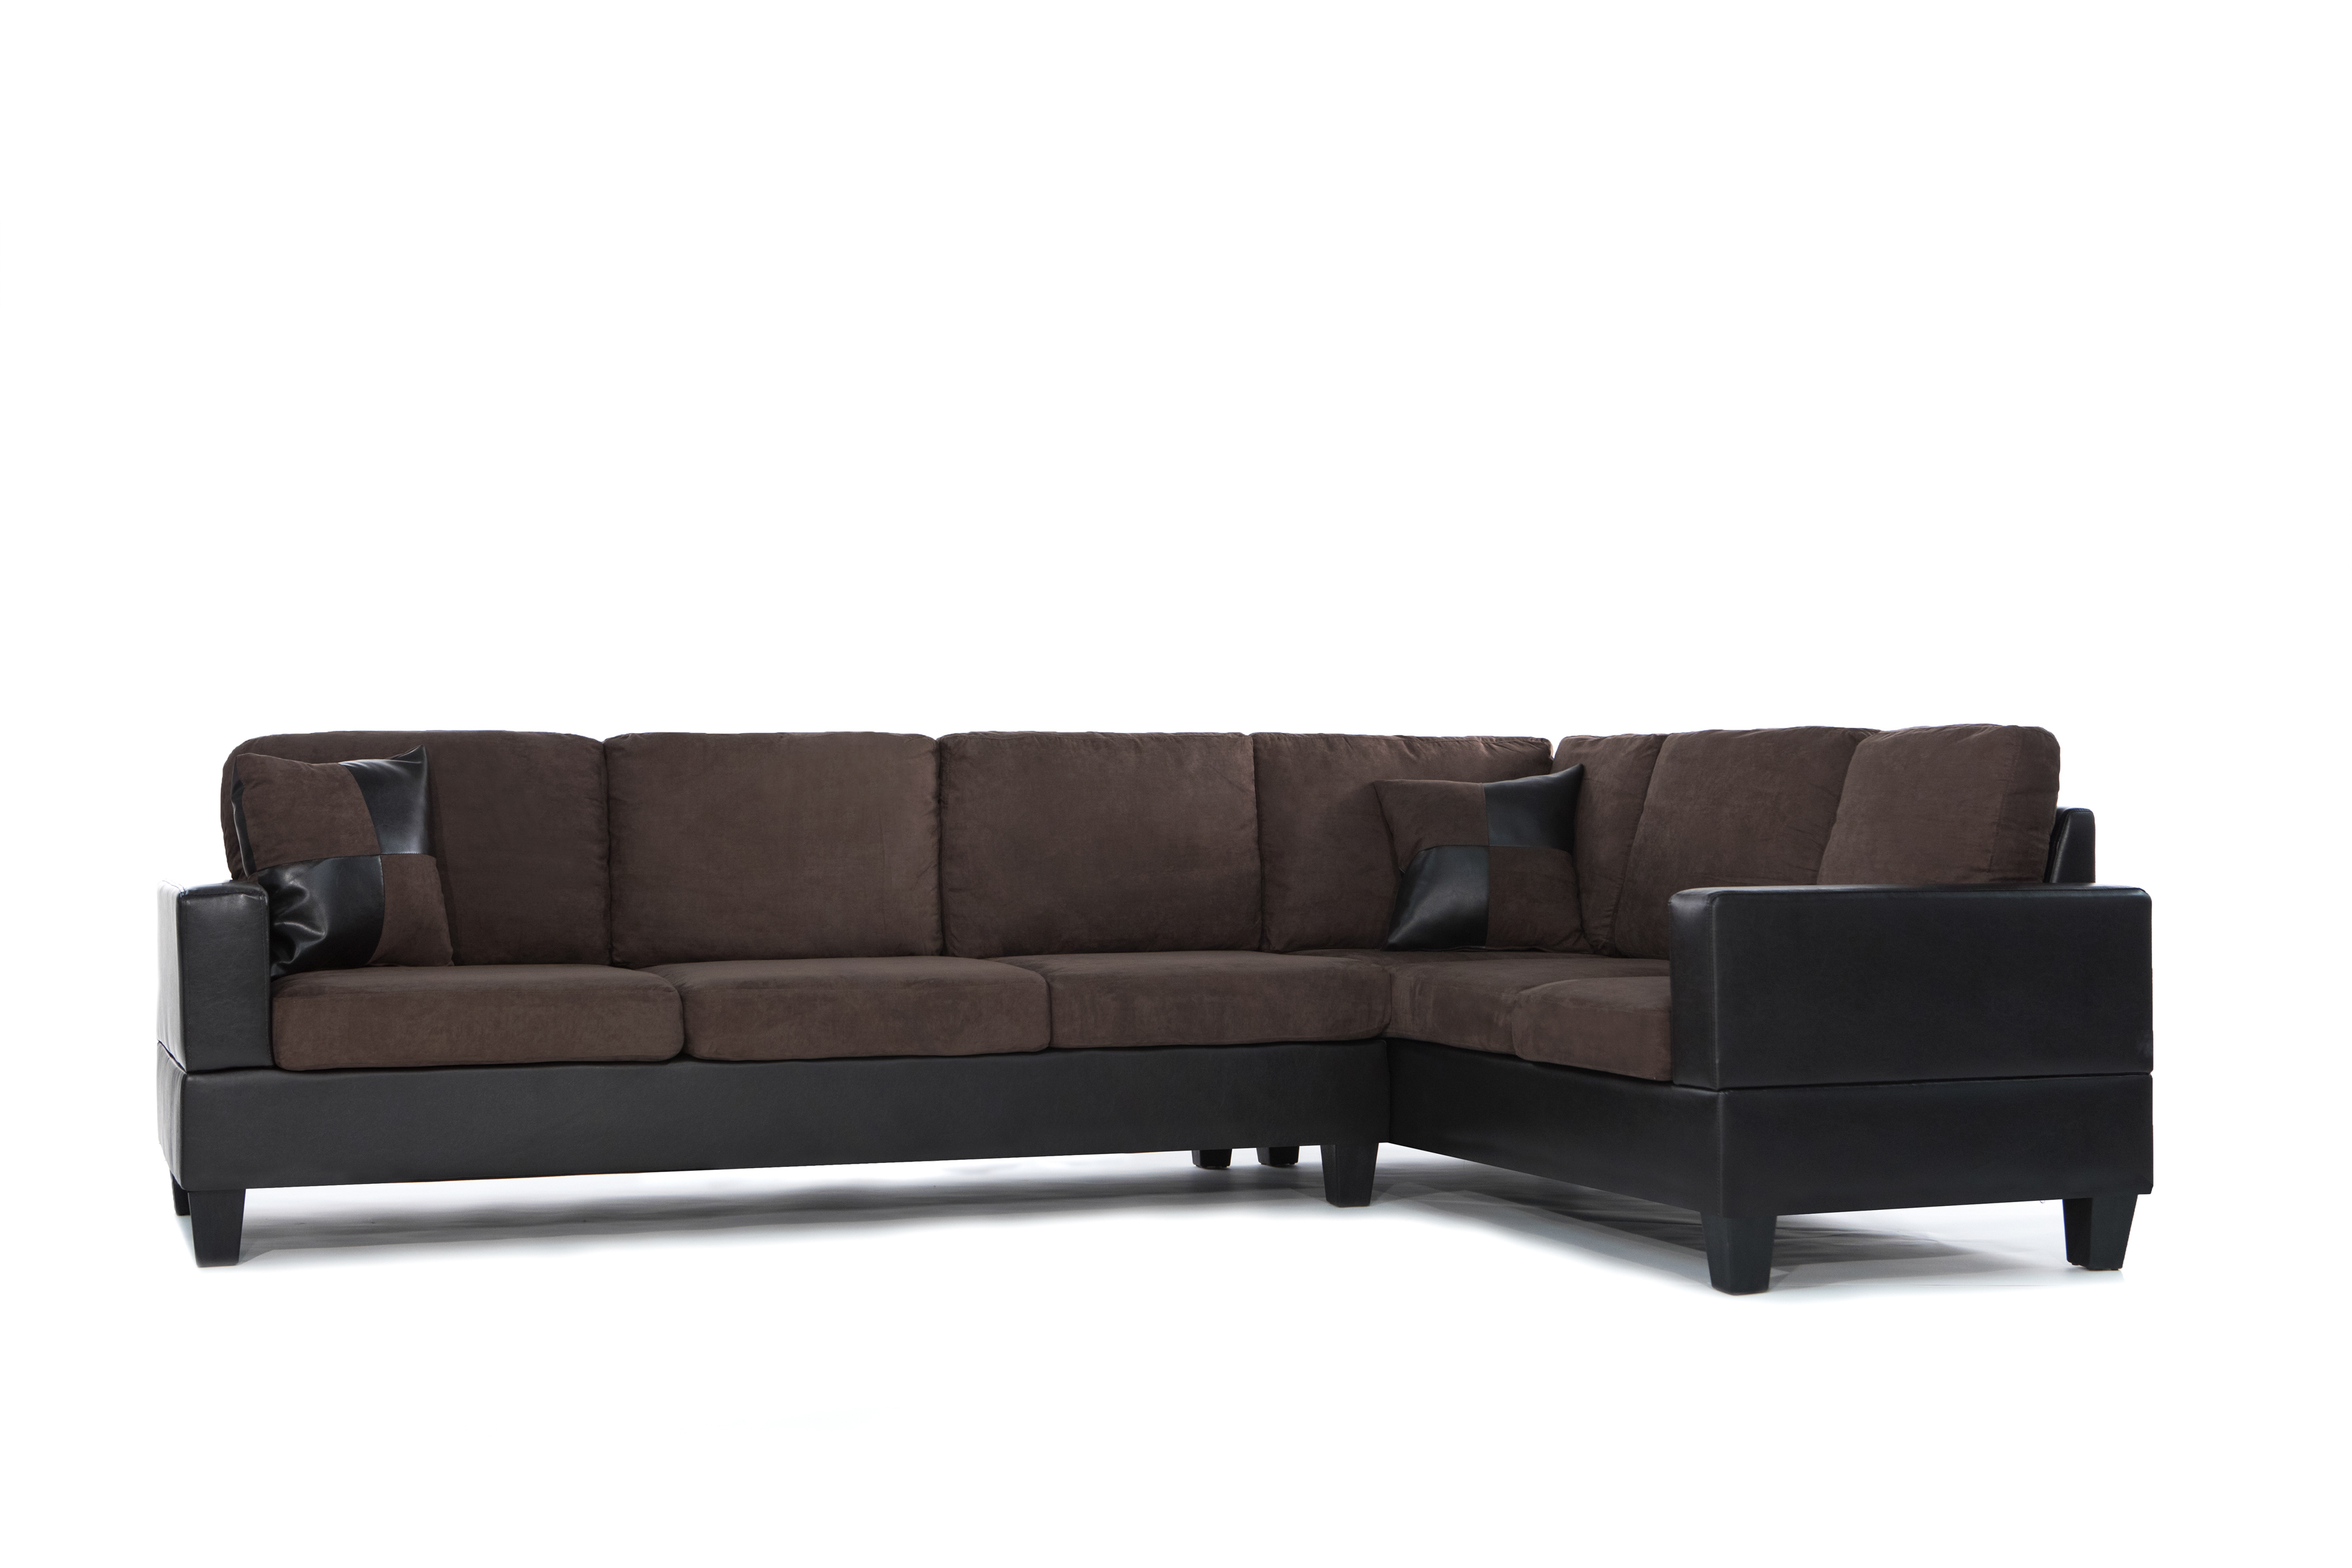 3 Piece Modern Soft Reversible Microfiber And Faux Leather Sectional Sofa  With Ottoman   Walmart.com